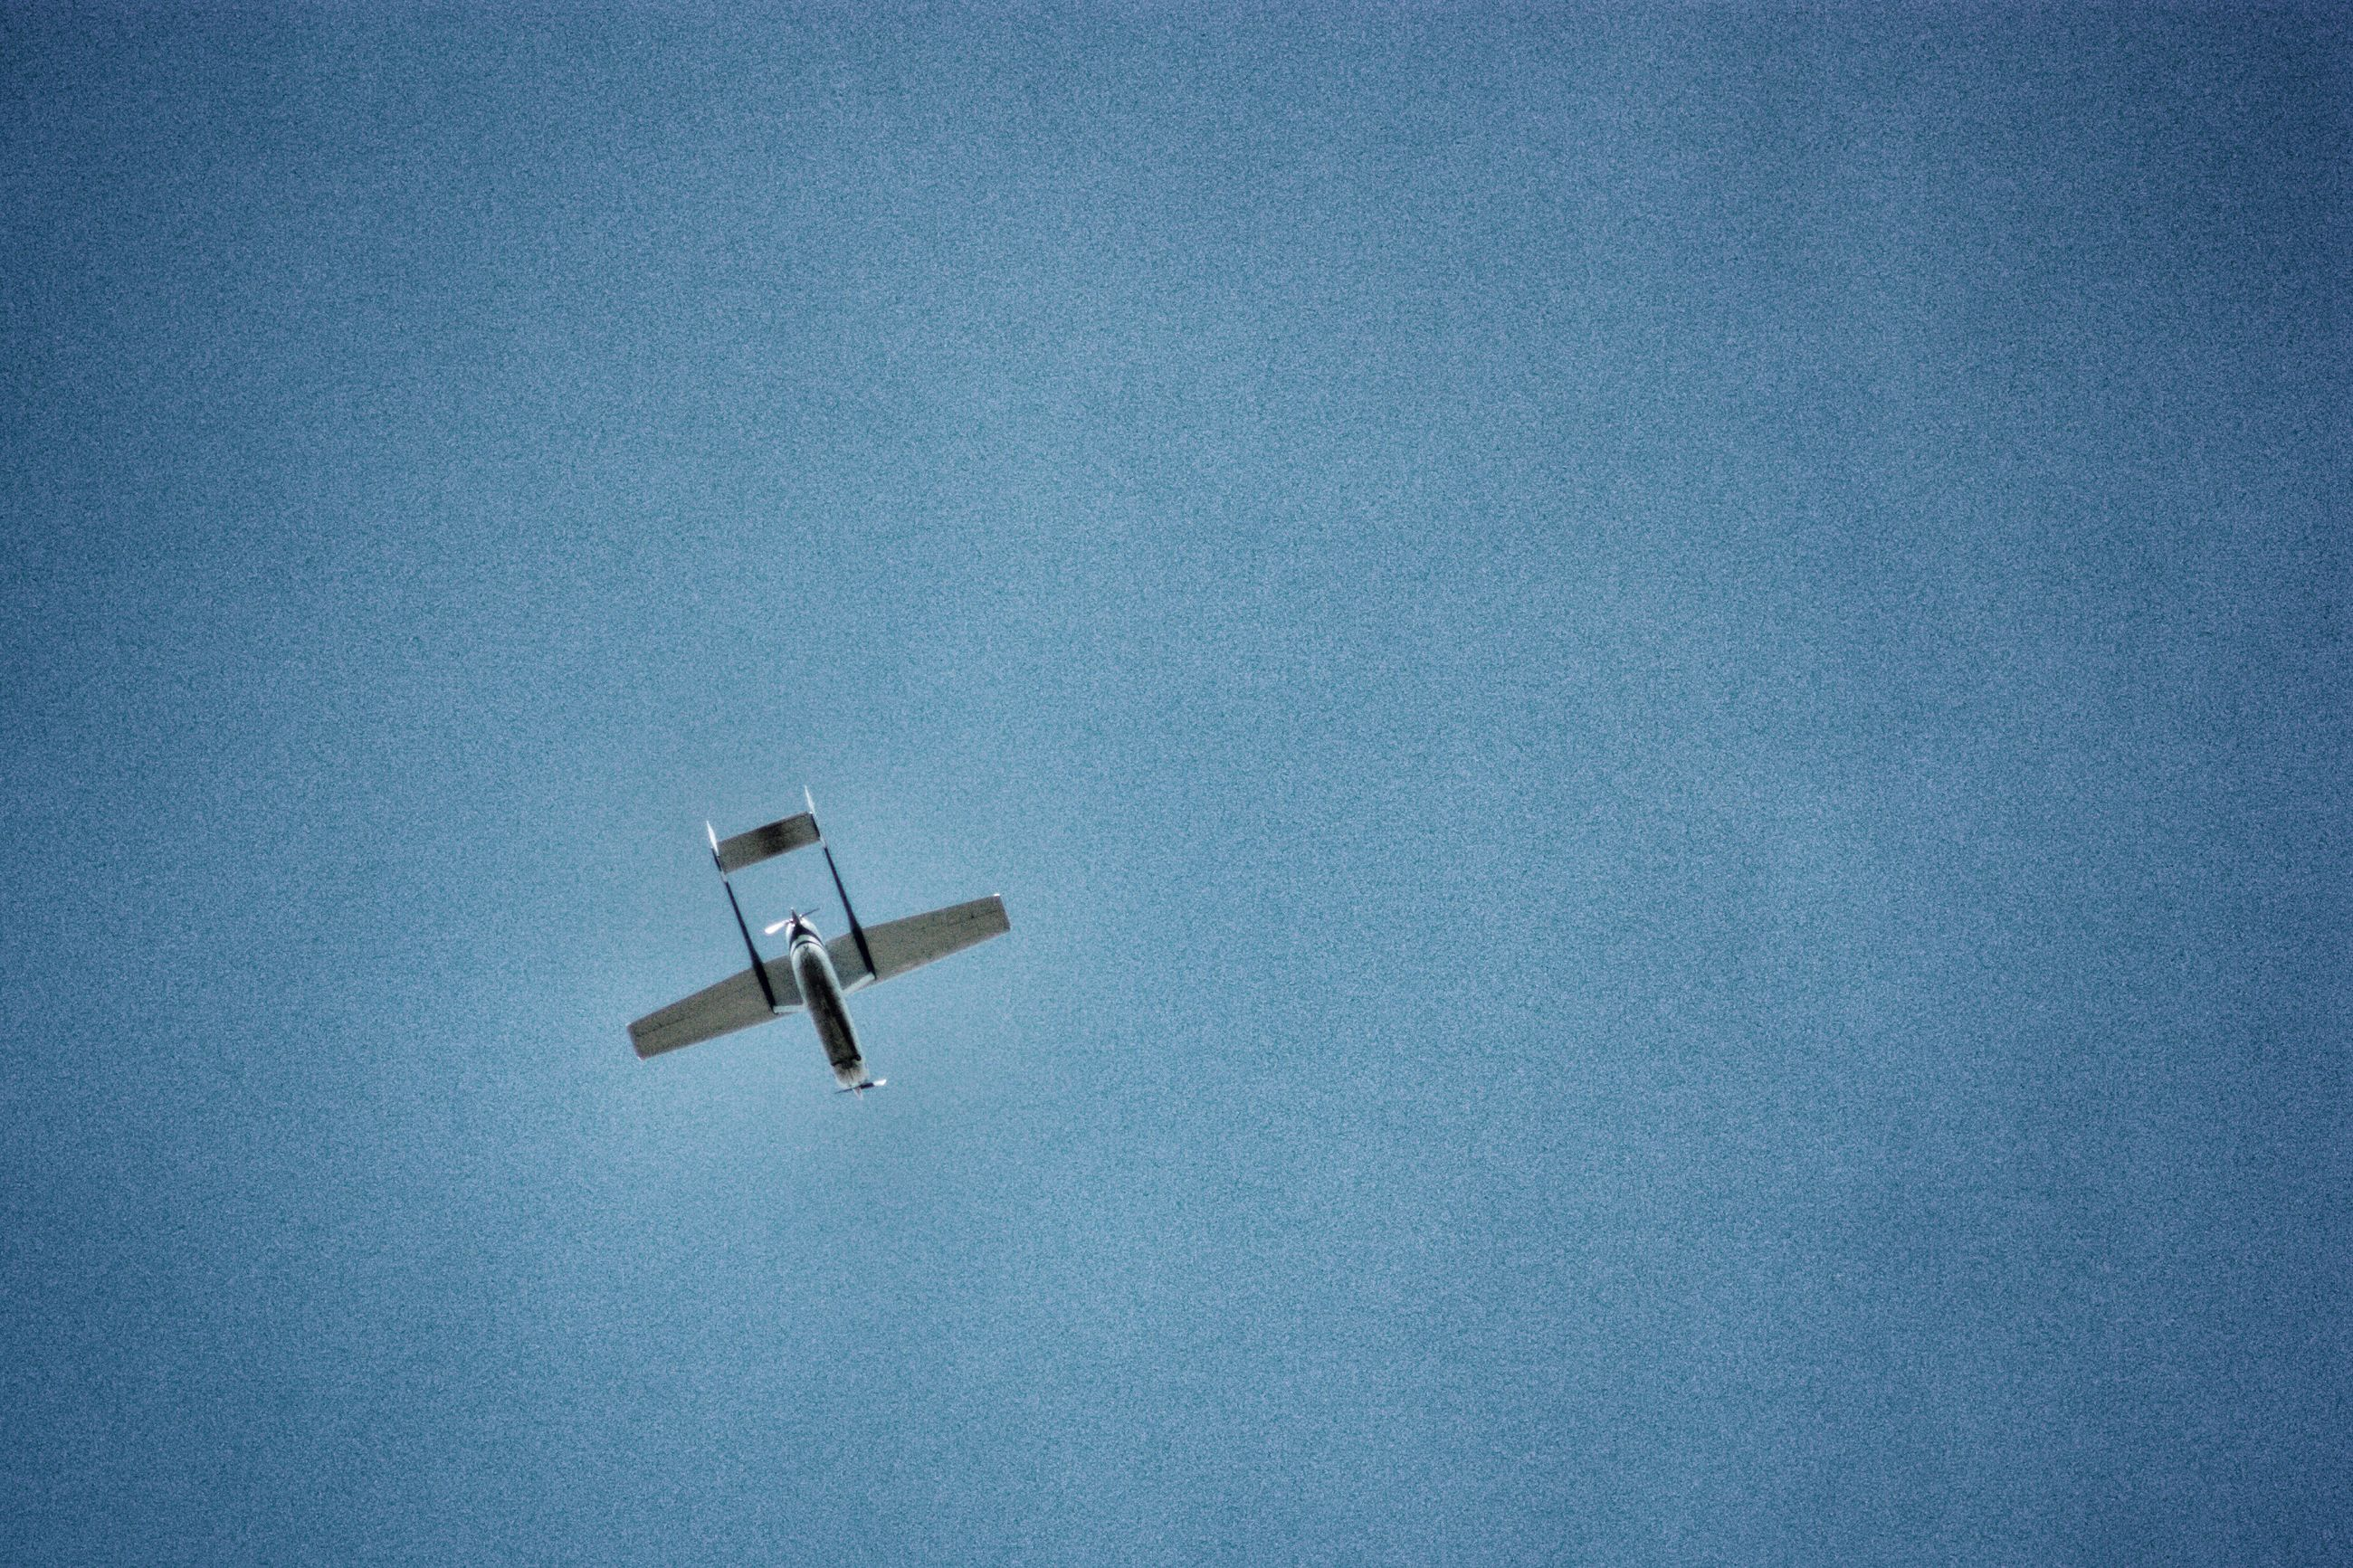 copy space, blue, security camera, no people, technology, clear sky, day, flying, sky, outdoors, close-up